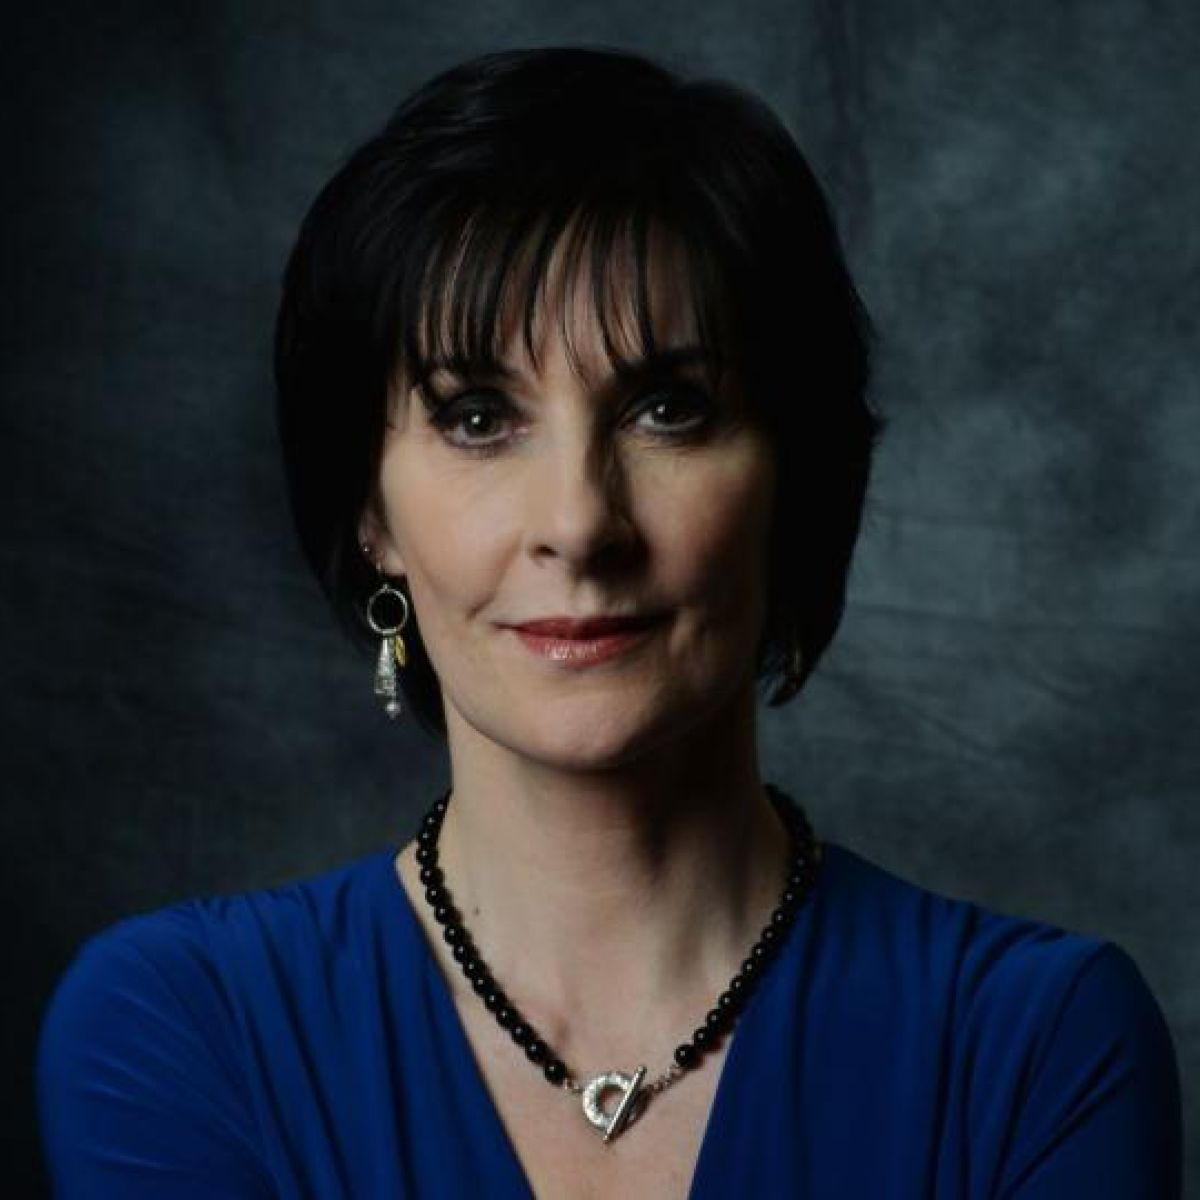 Enya breaks her silence on fame, privacy and music